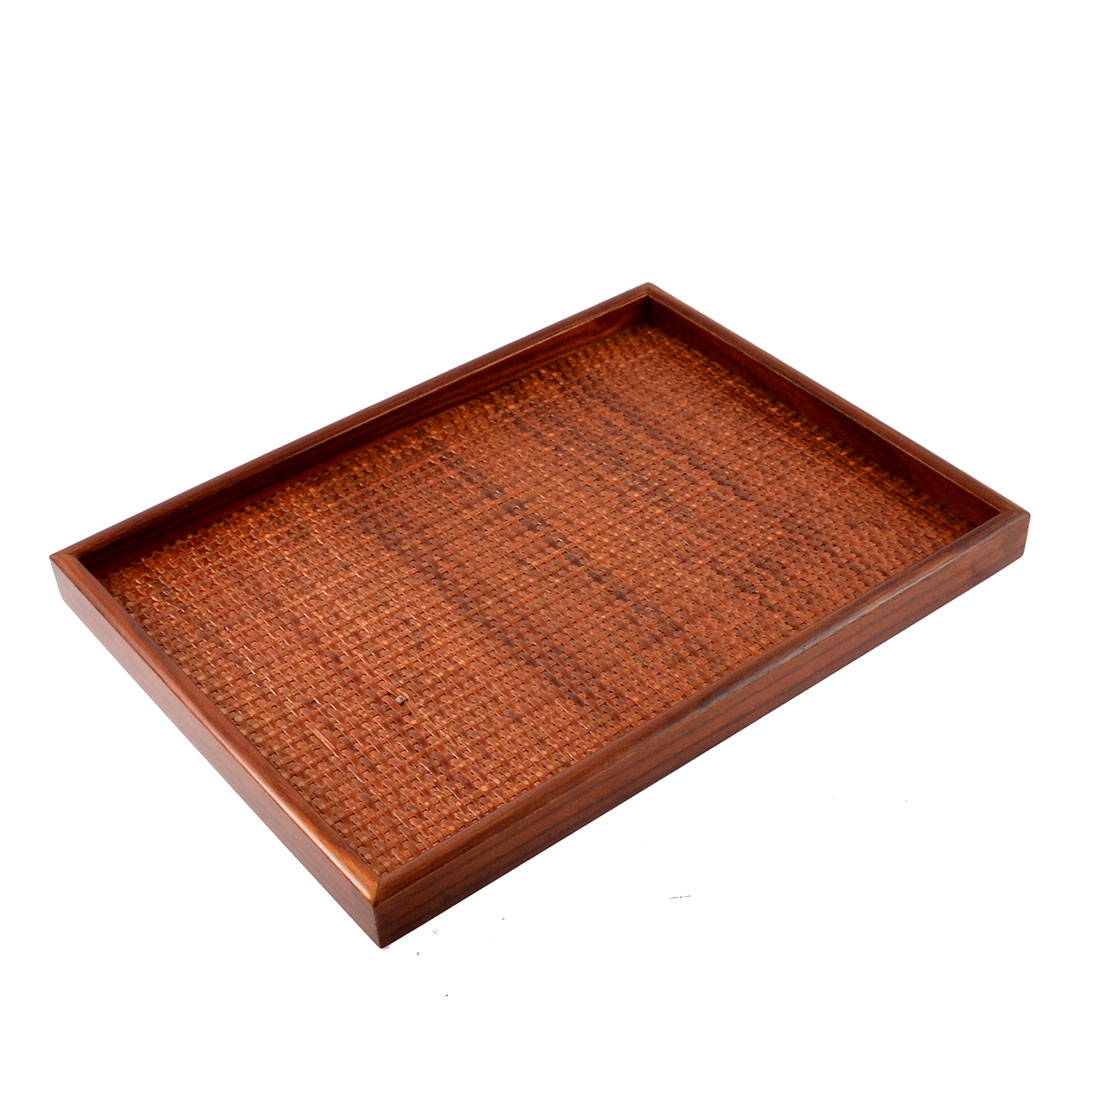 Restaurant Coffee Shop Wood Rattan Wave Design Tea Dessert Food Serving Tray Platter